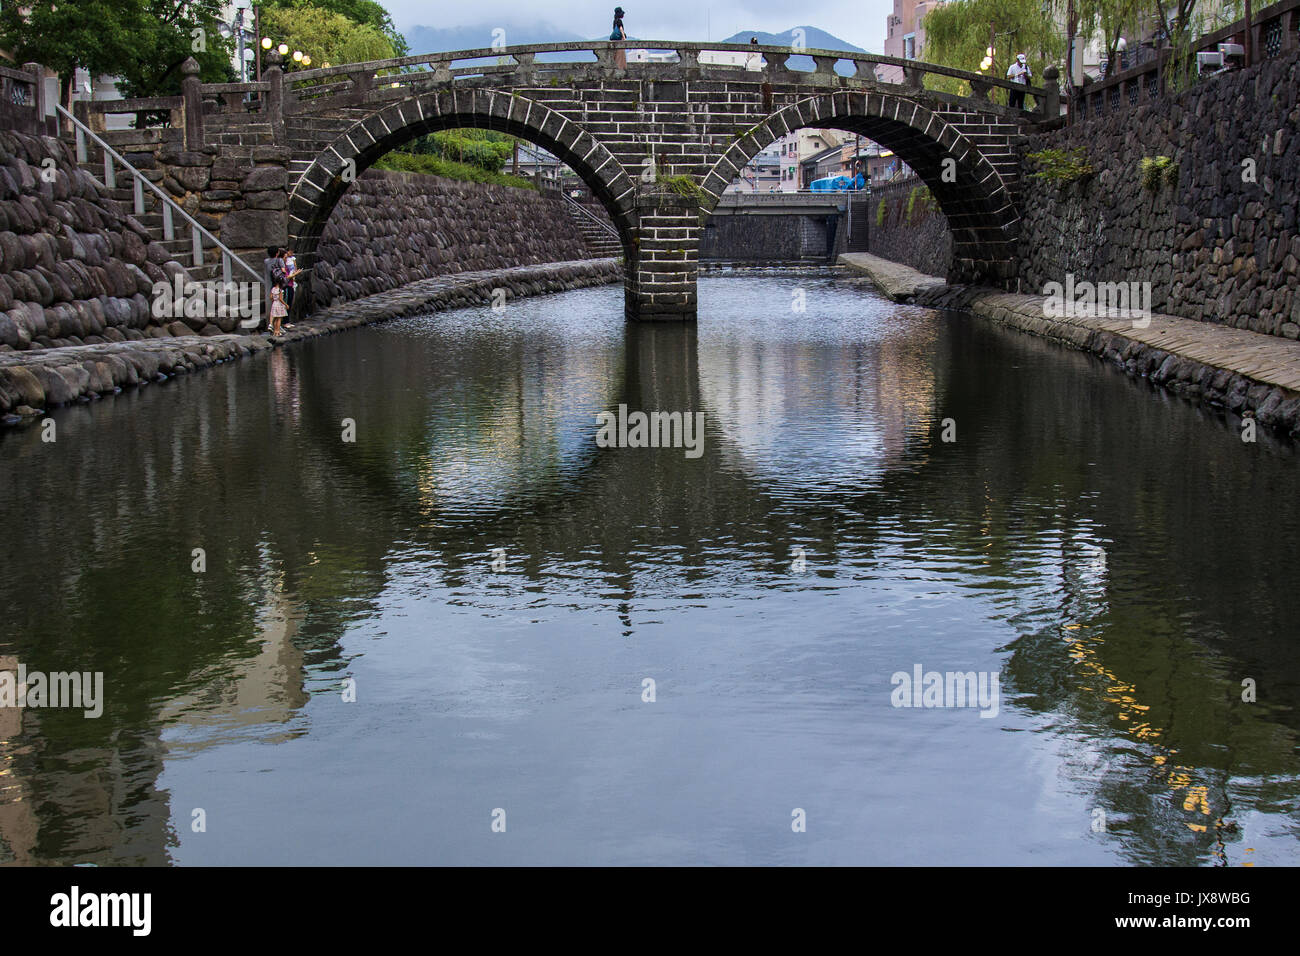 Meganebashi or Spectacles Bridge, over the Nakashima River was built in Nagasaki in 1634.  Said to be the oldest stone arch bridge in Japan and has be - Stock Image